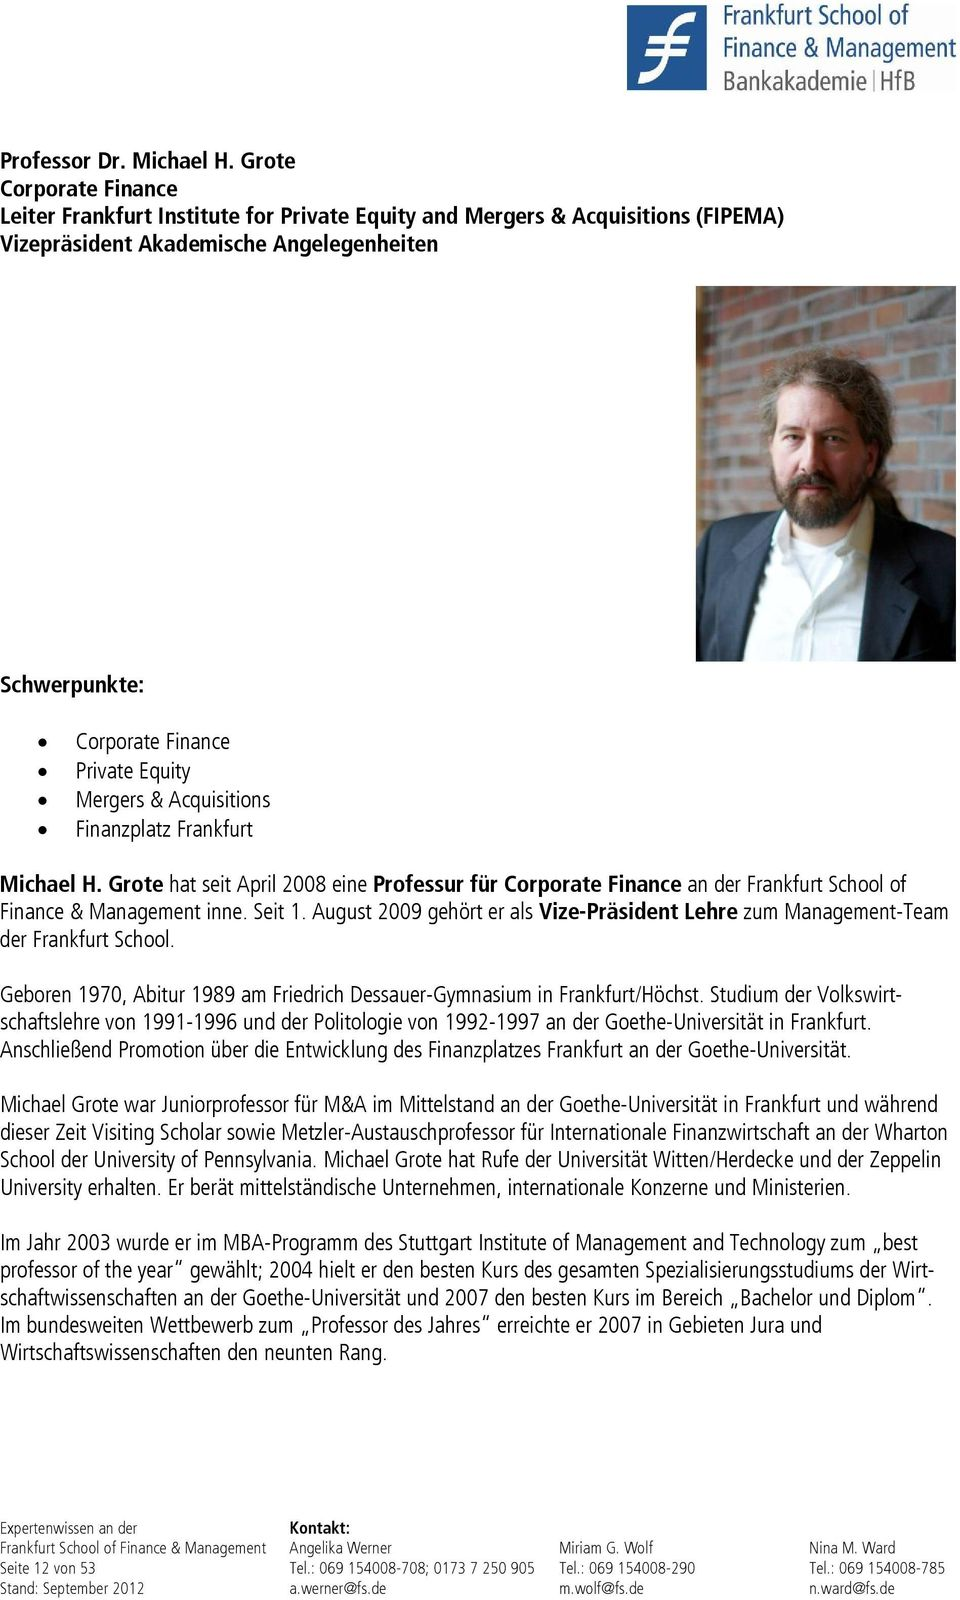 Acquisitions Finanzplatz Frankfurt Michael H. Grote hat seit April 2008 eine Professur für Corporate Finance an der Frankfurt School of Finance & Management inne. Seit 1.